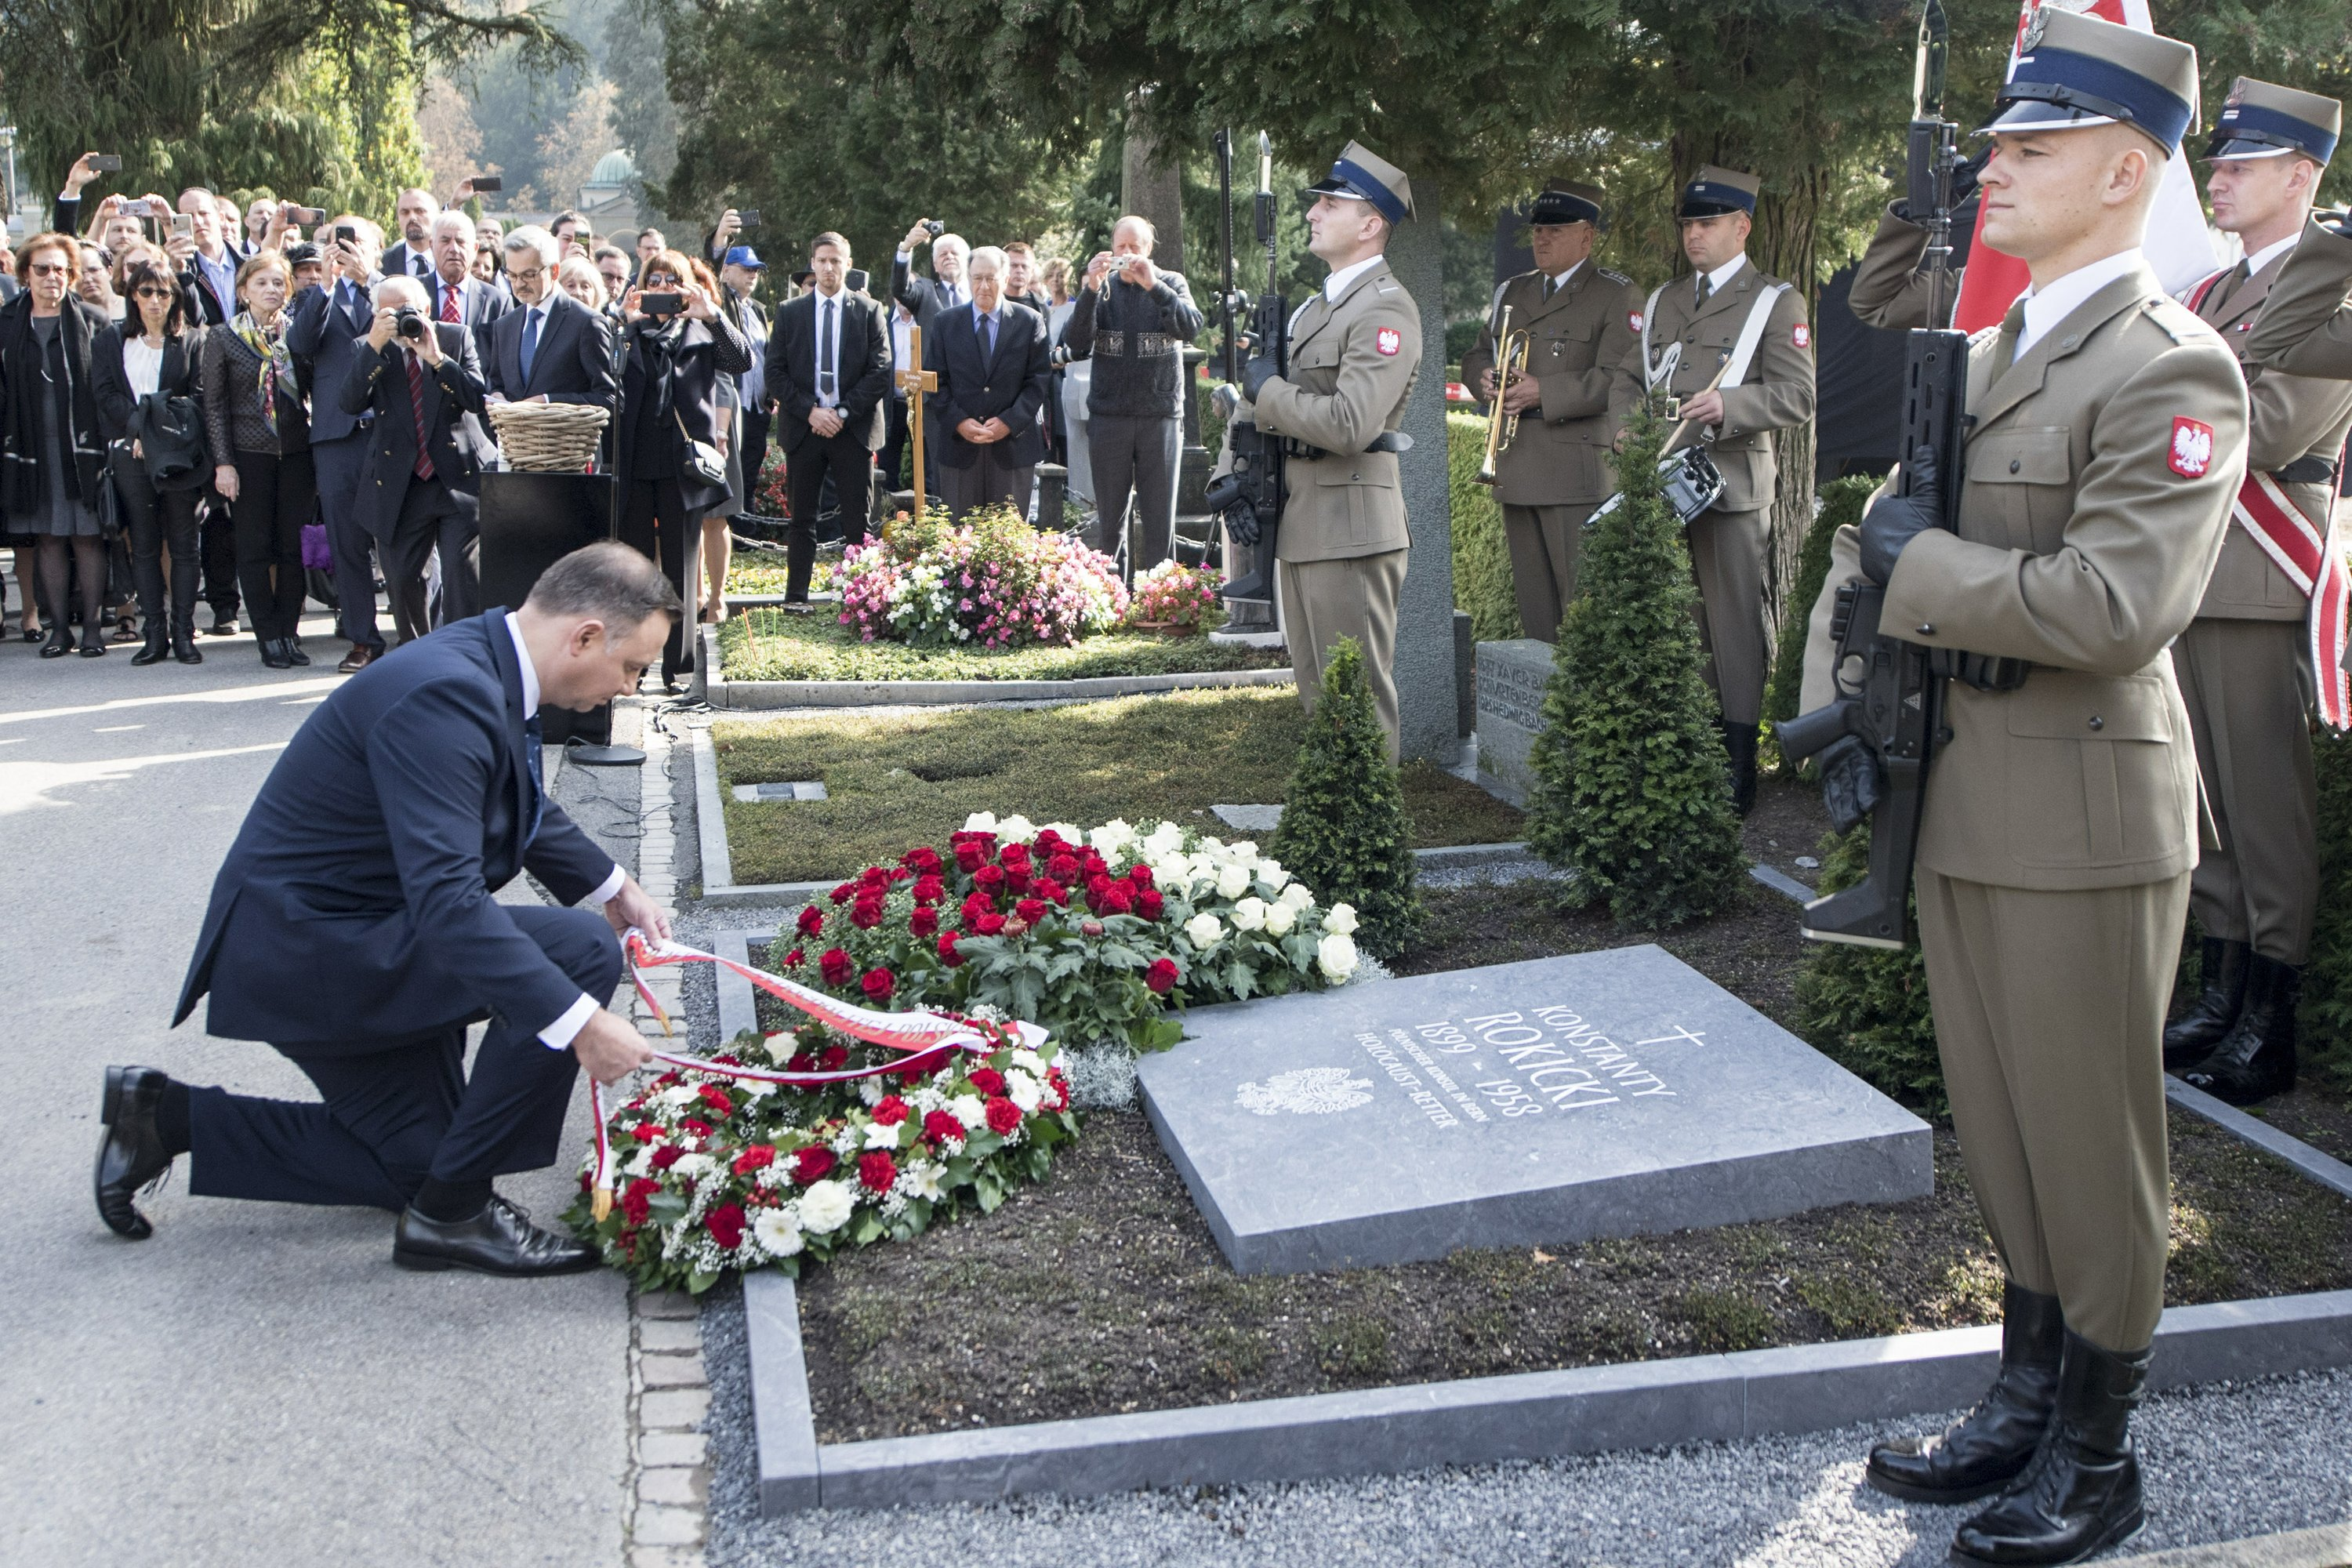 Polish leader honors WWII diplomat who tried to help Jews